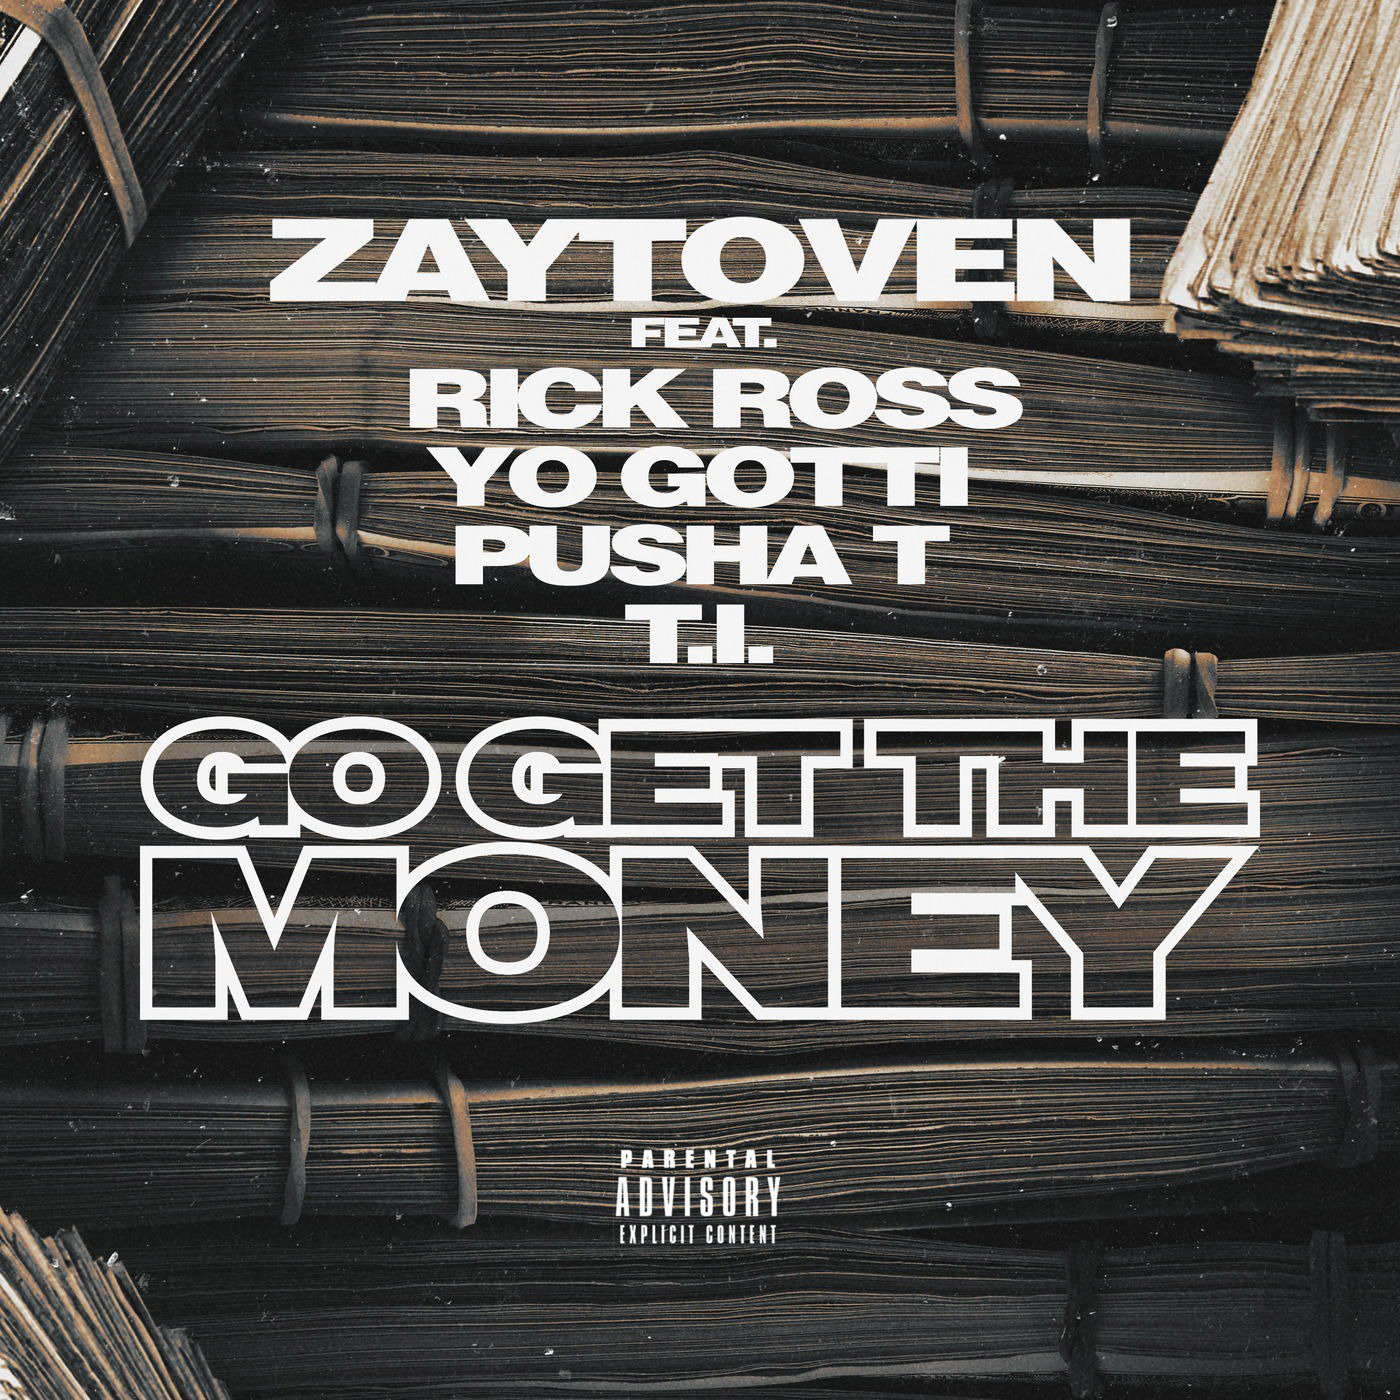 Zaytoven – Go Get the Money (feat. Rick Ross, Yo Gotti, Pusha T & T.I.)